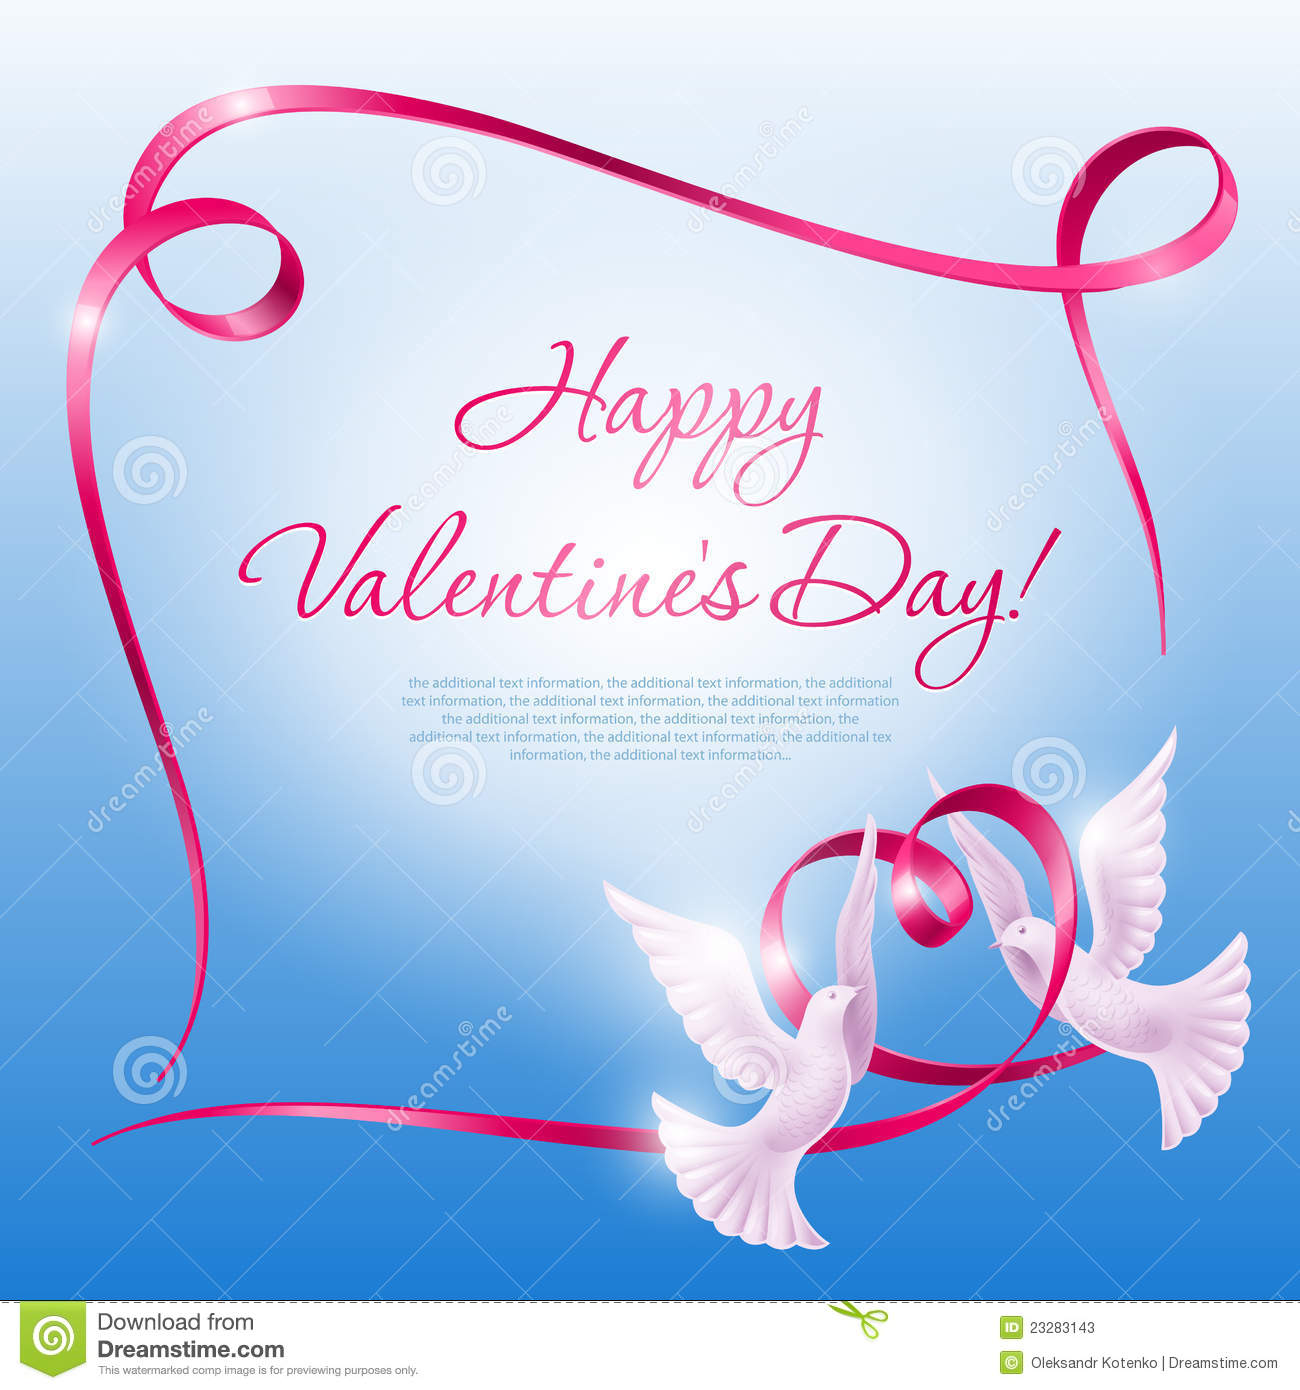 Download Background On Valentine's Day Stock Vector - Illustration of happy, color: 23283143